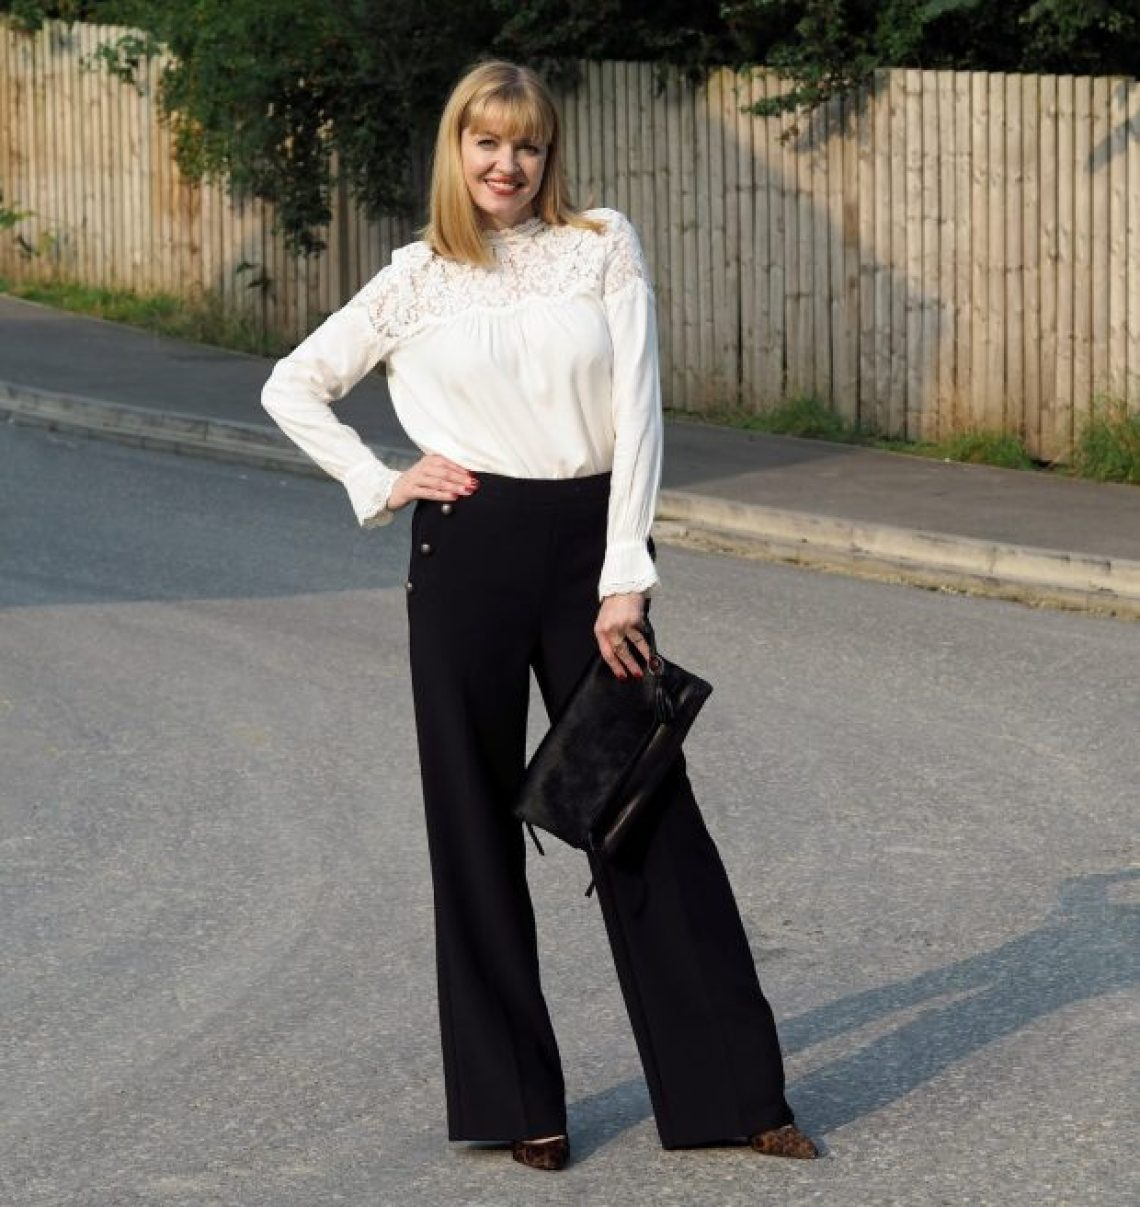 ms-romantic-lace-blouse-and-flared-trousers-1-2-min-1